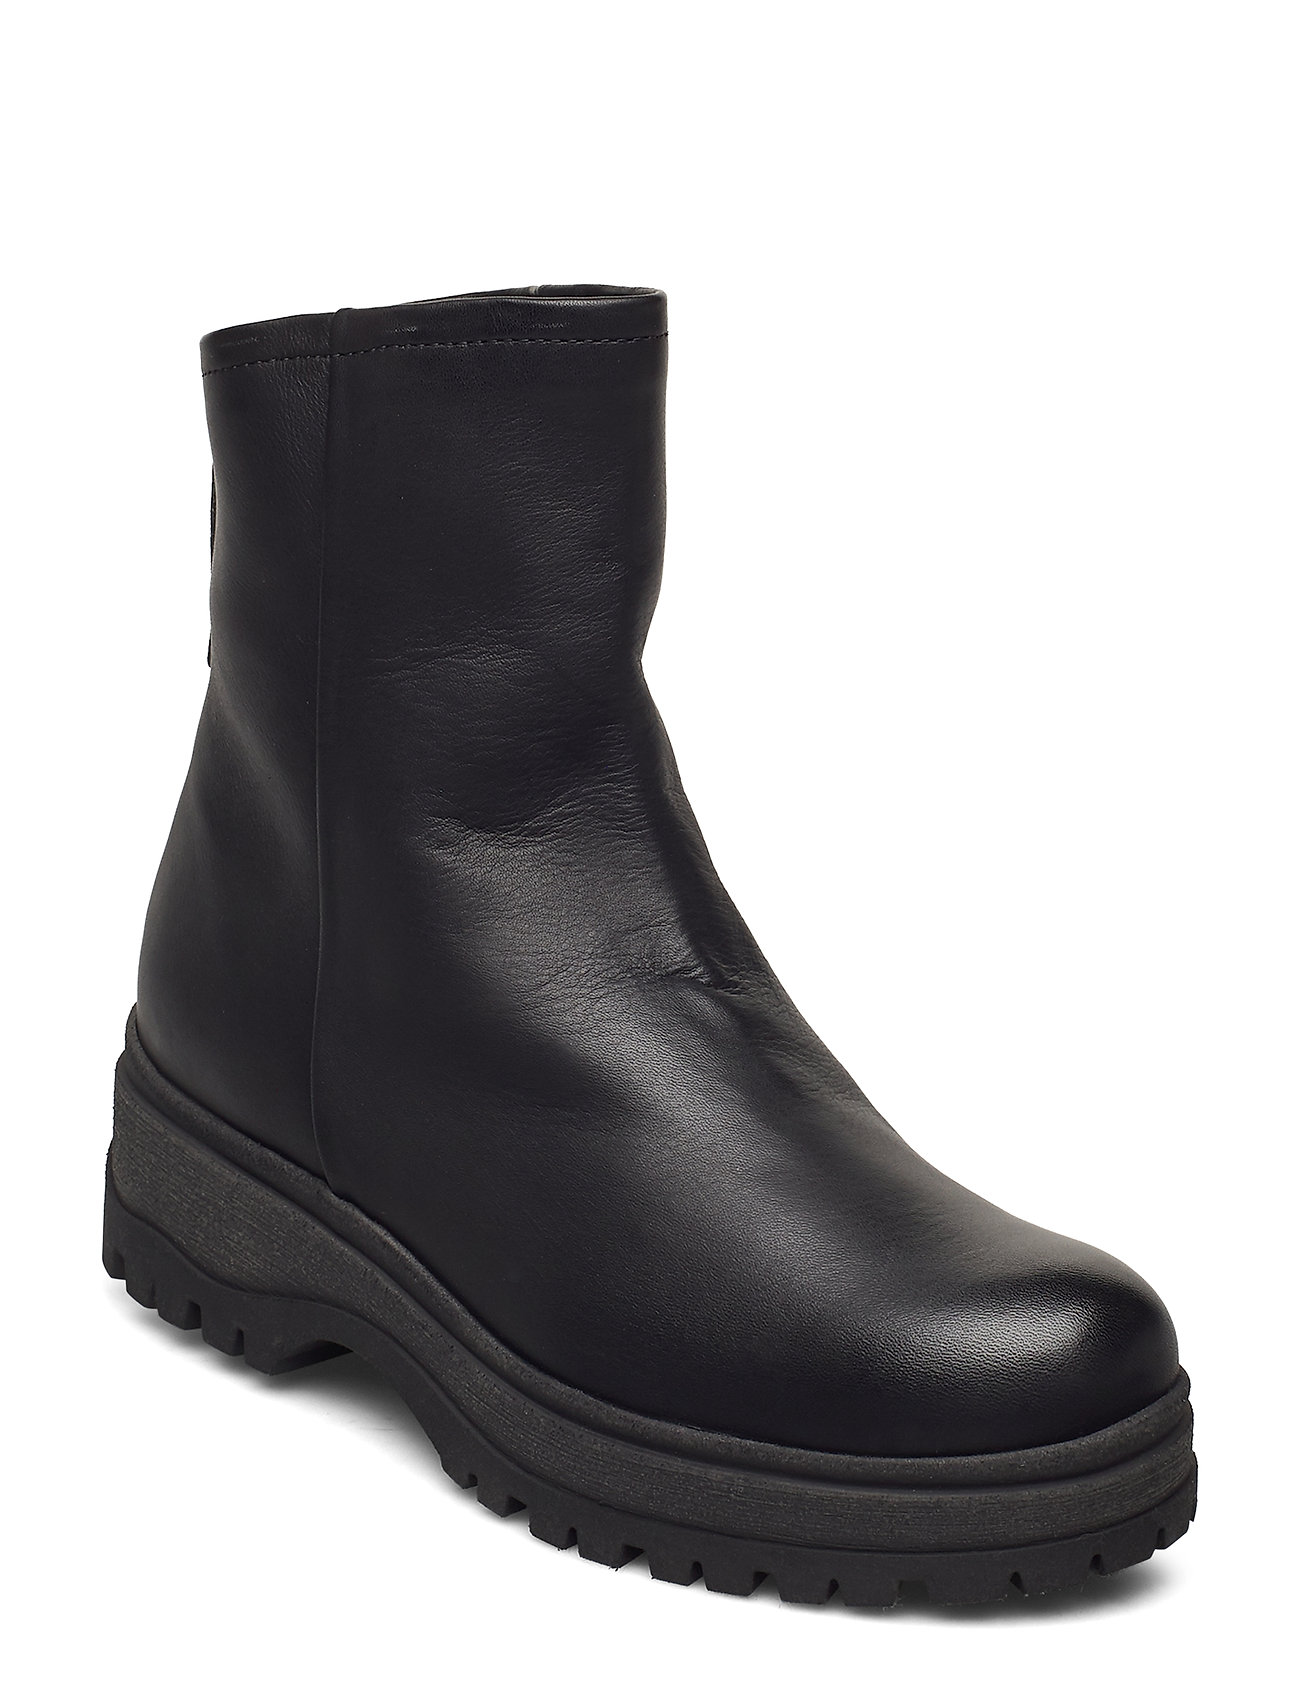 Image of Ankle Boot Shoes Boots Ankle Boots Ankle Boot - Flat Sort Ilse Jacobsen (3452238953)